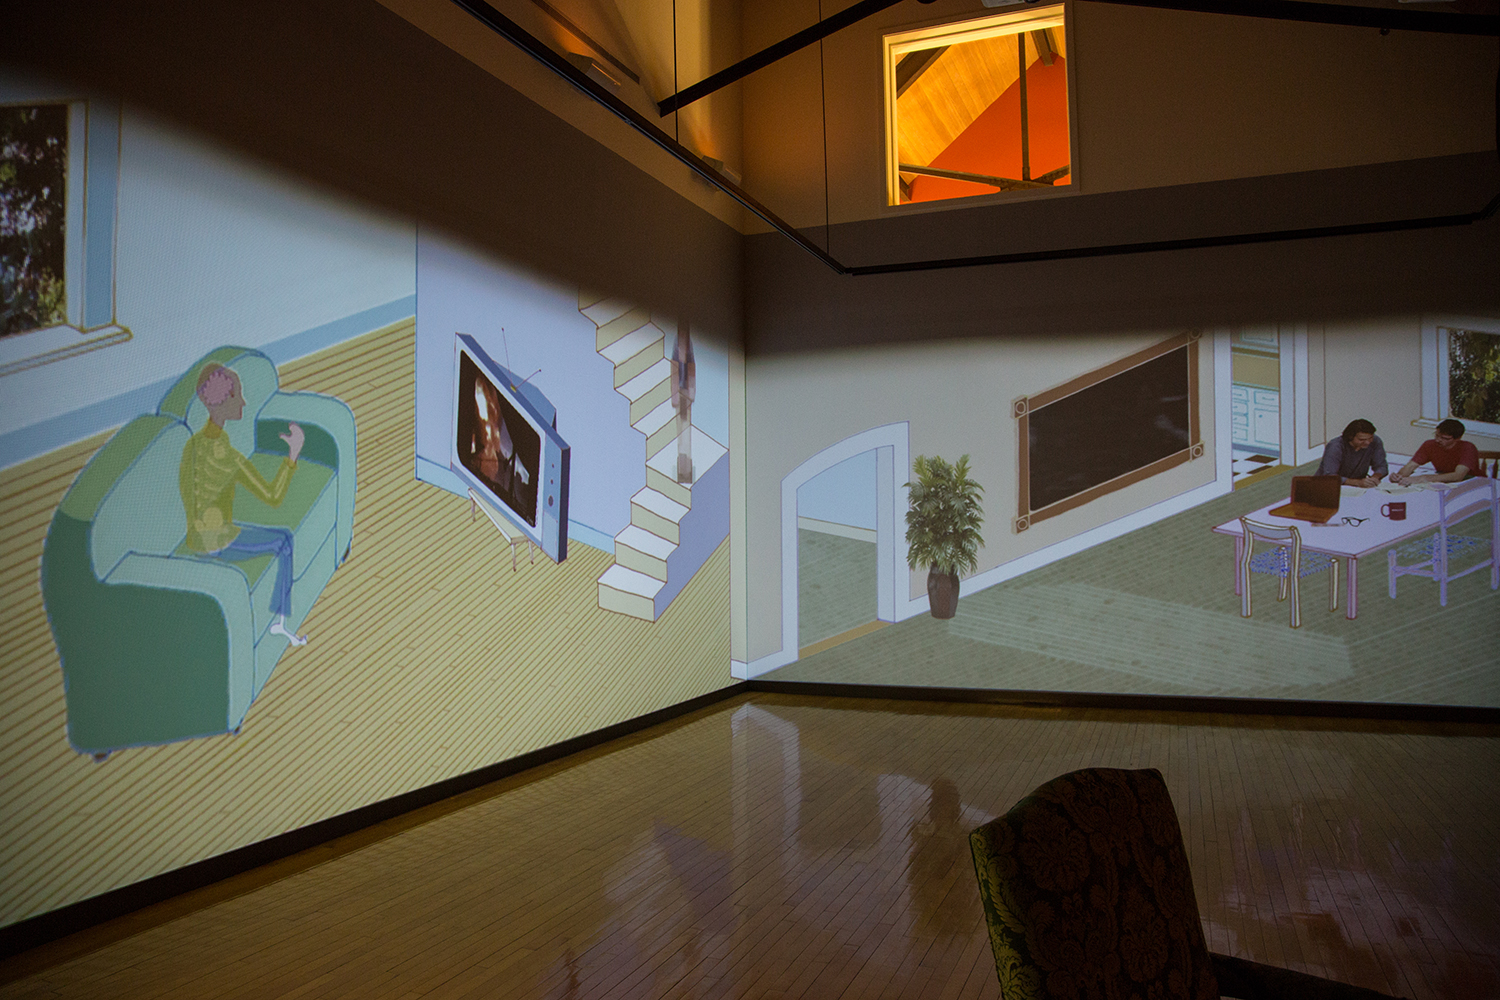 Bodies Take To Light ,   2015, Holbrook Art Center, Millbrook NY,  collaboration with Jimi Pantalon, three channel video installation, running time 11 minutes, curated by William Hardy